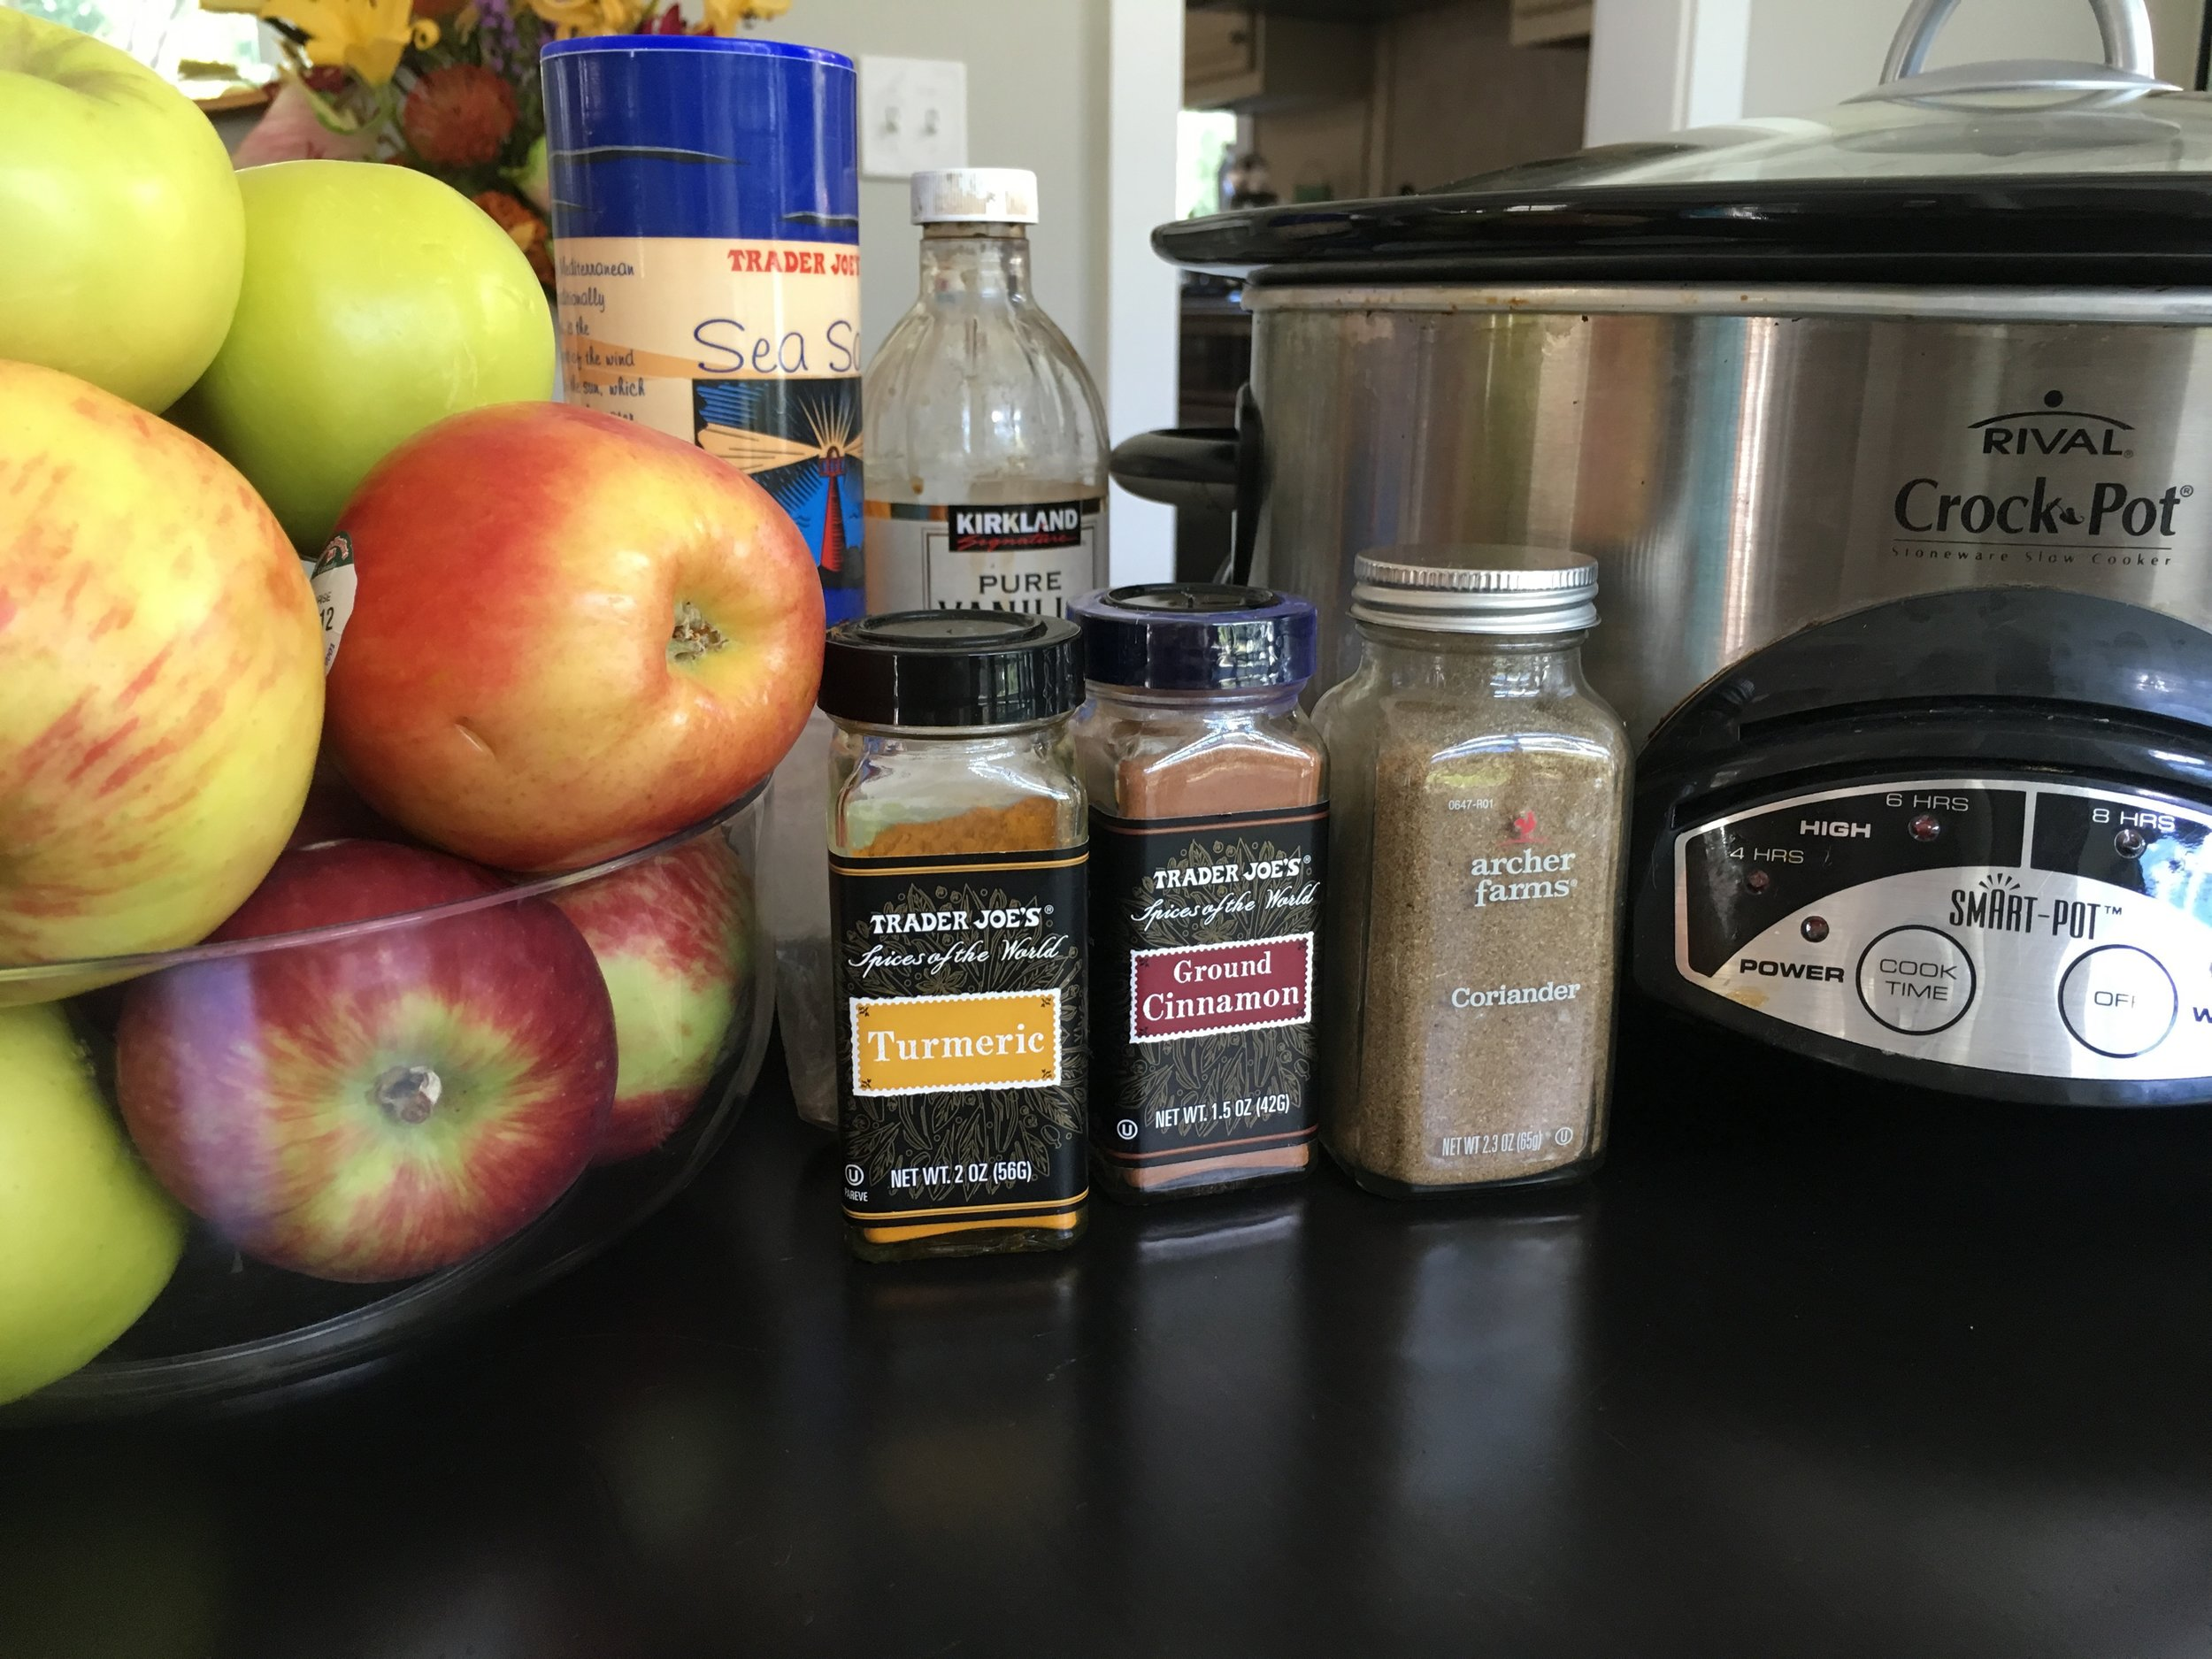 I get my fruit from a  CSA  (Community Supported Agriculture) and I always grab a newsletter when I pick up the fruit because it's filled with amazing tips, information and recipes. This recipe is borrowed from  EatingWell.com . Originally published in the September/October 2015 issue of Eating Well Magazine. I used McIntosh, Washington Xtra-fancy Ginger Gold and Granny Smith apples because that's what I had in my fridge. I think you could substitute coconut sugar for the brown sugar. We used brown sugar even though it was not in the photo. Whoops!